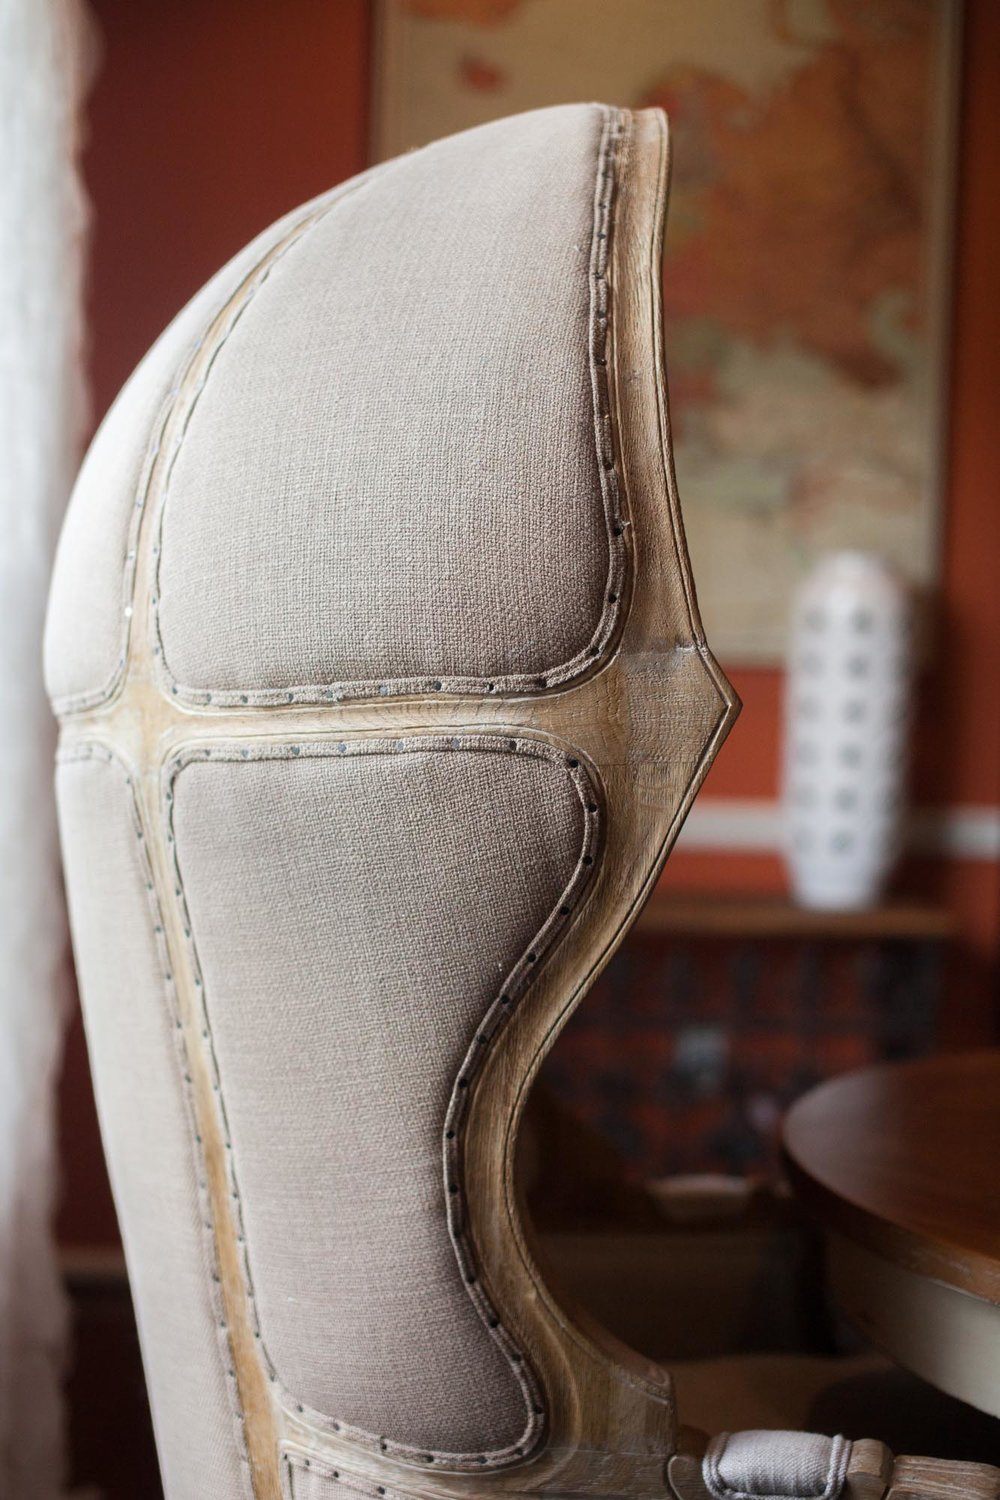 High back of beige burlap textured chair